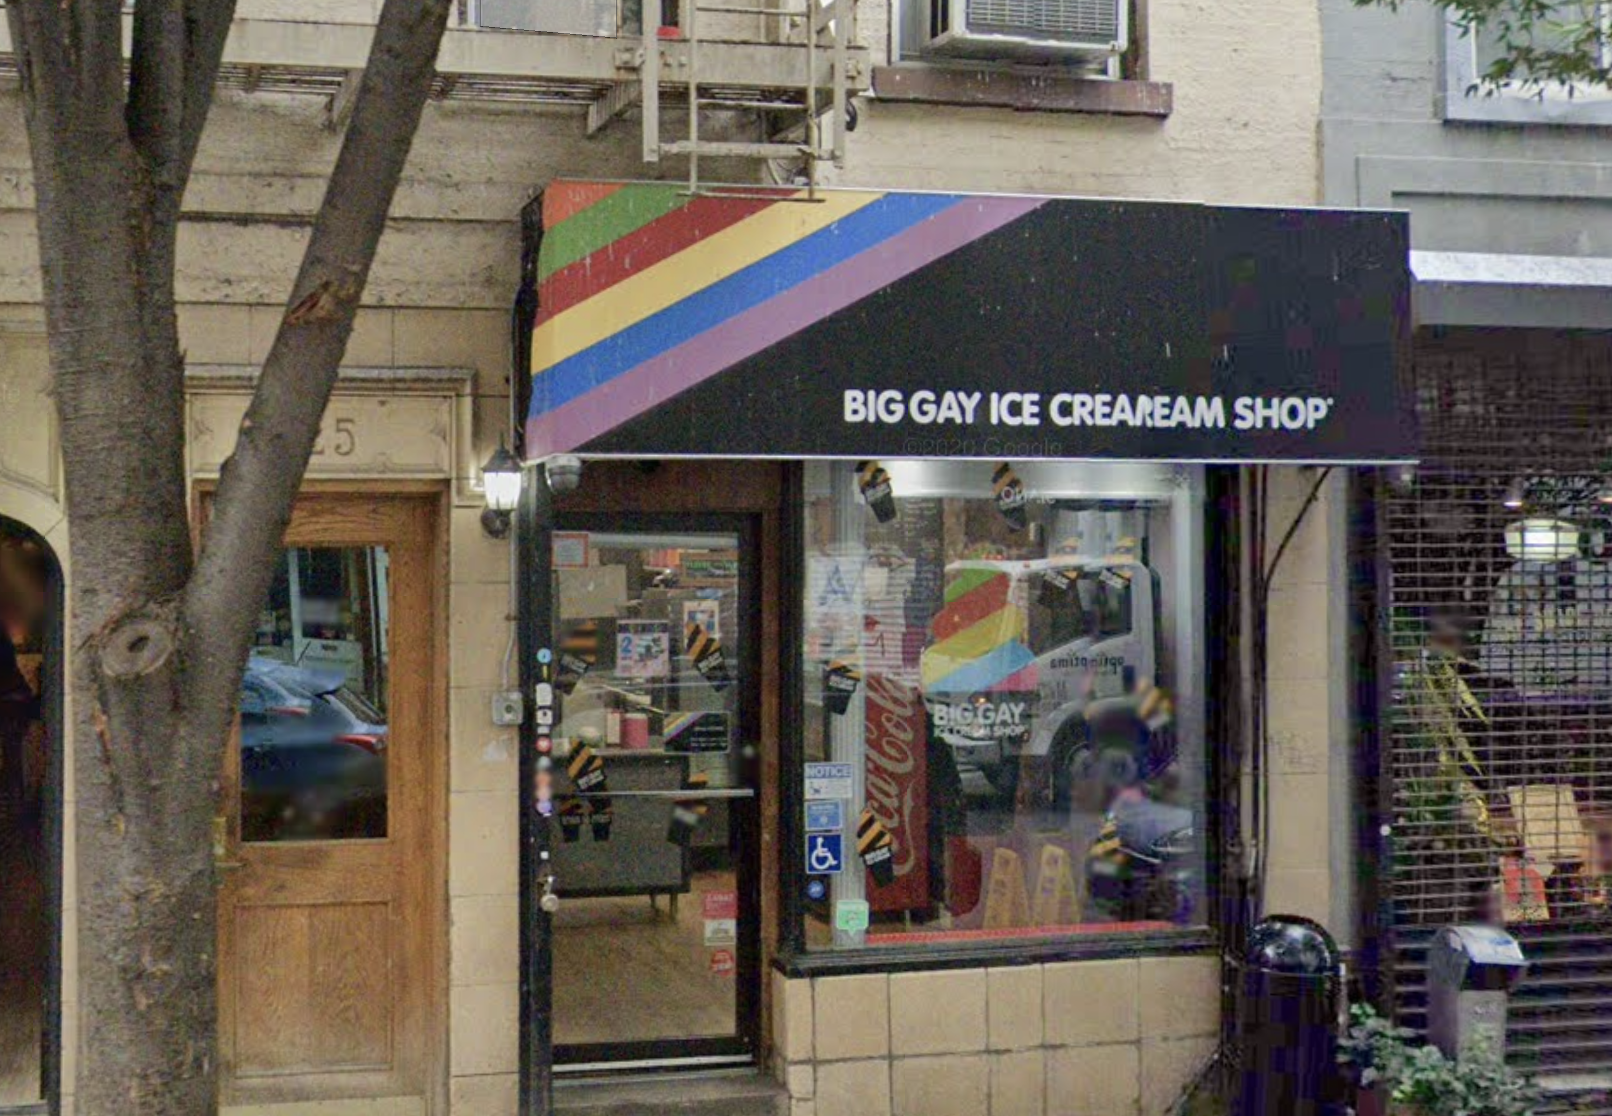 The exterior of the Big Gay Ice Cream shop in the East Village